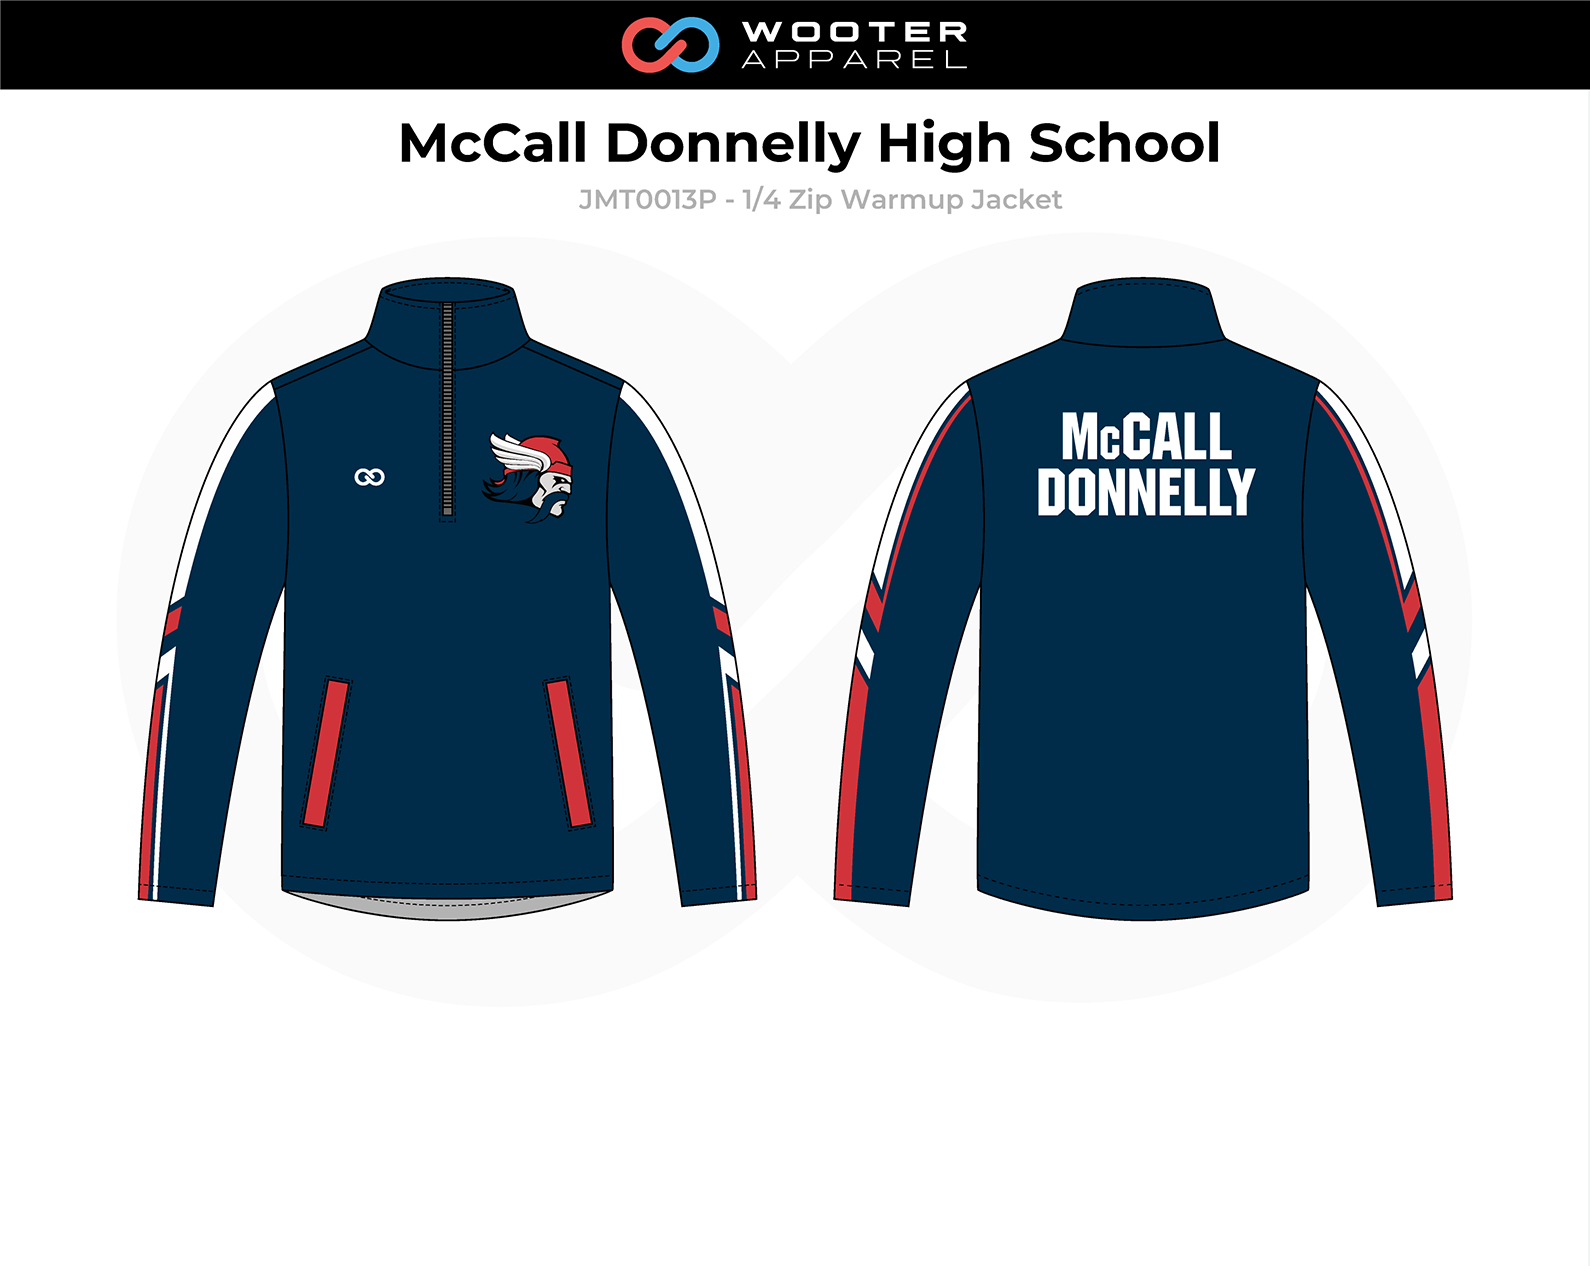 2018-10-25 McCall Donnelly High School Basketball (Panthers) Warmup Jacket (solid sleeves).png